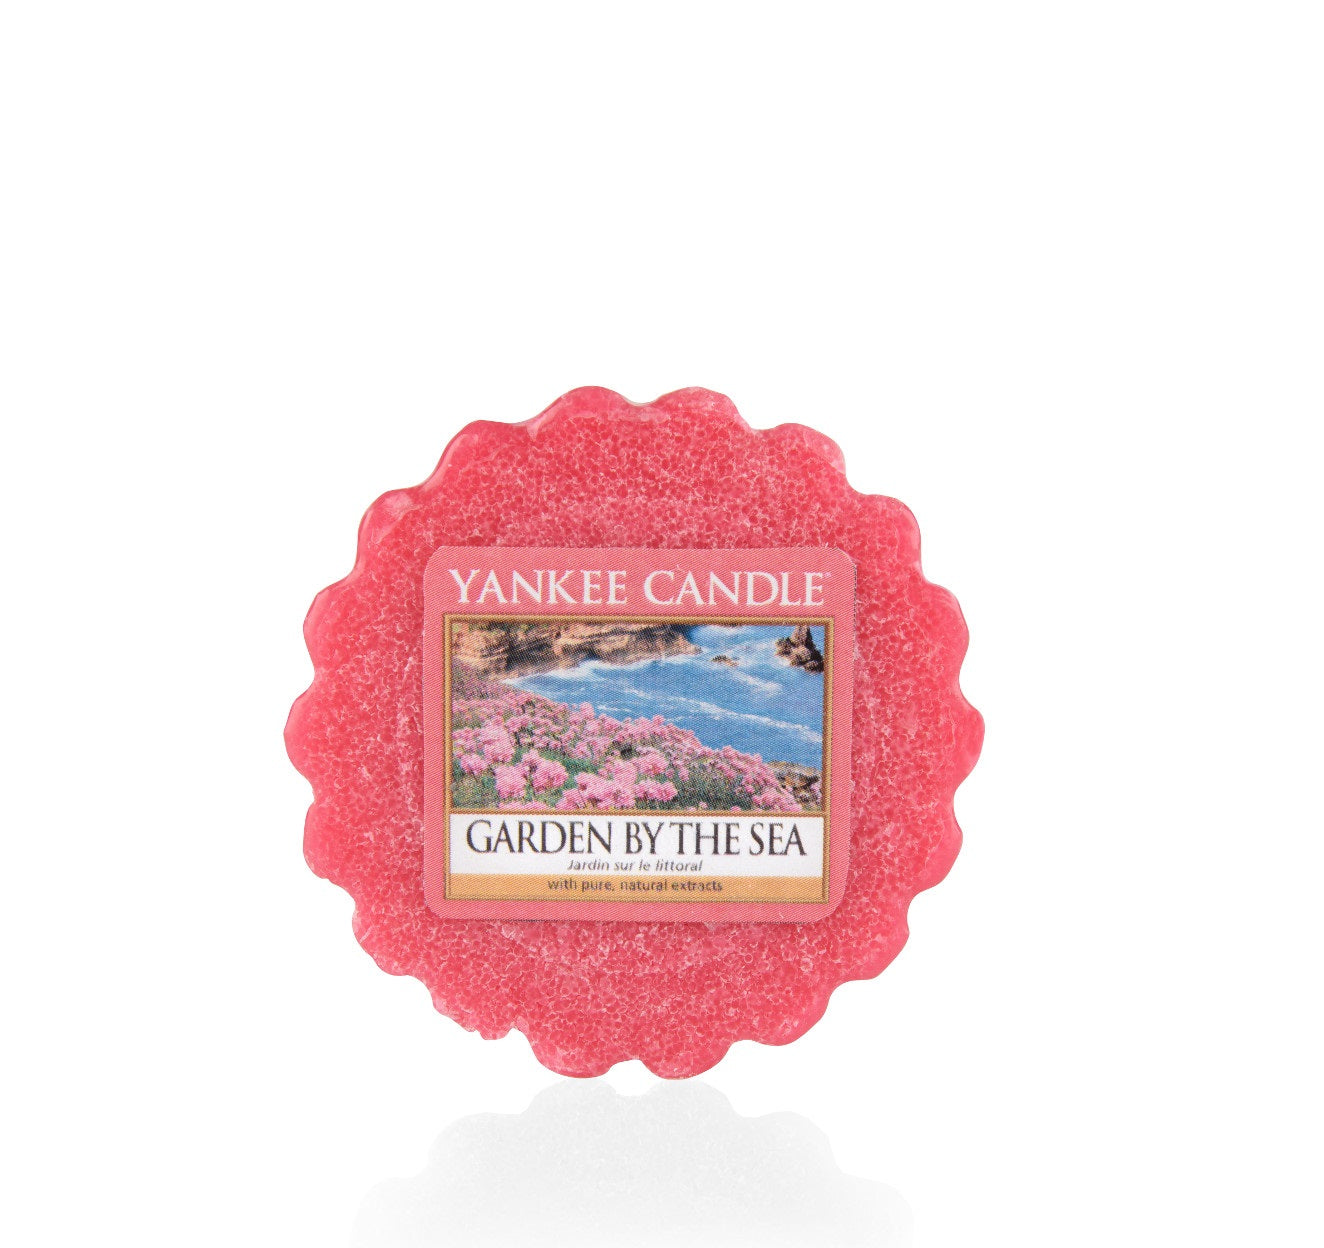 GARDEN BY THE SEA -Yankee Candle- Tart